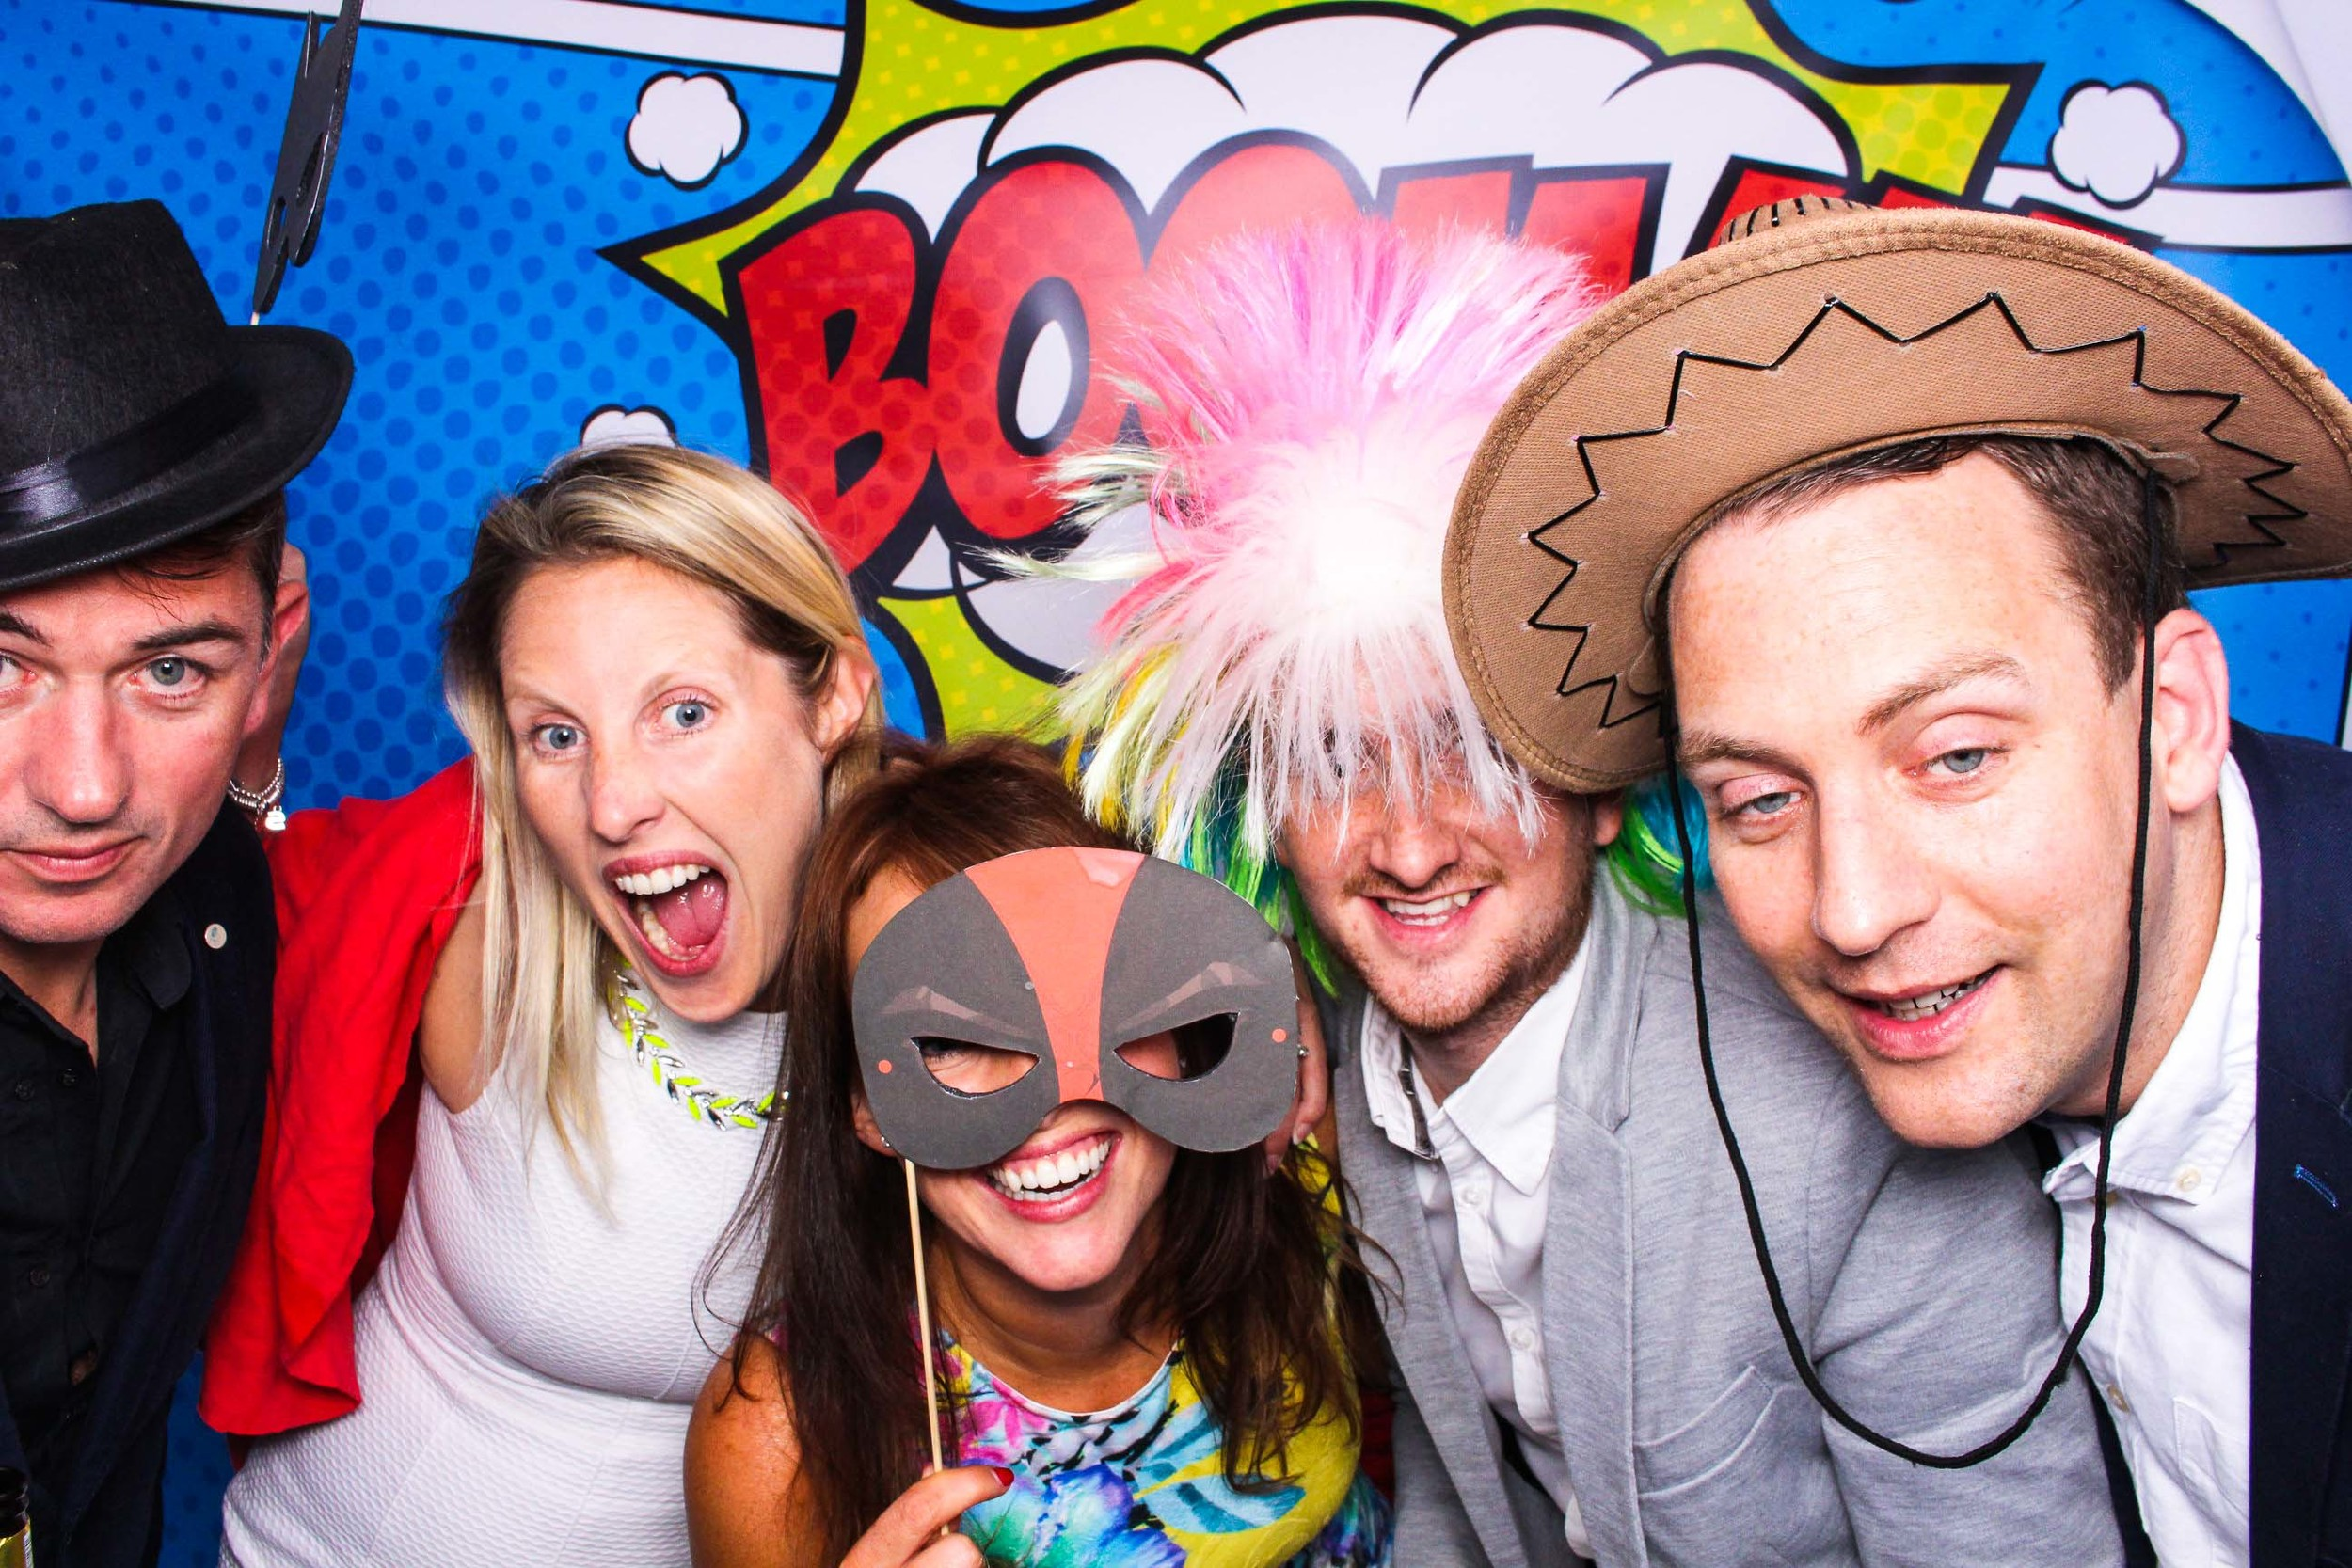 Fotoauto Photo Booth Hire - Shop Direct-297.jpg